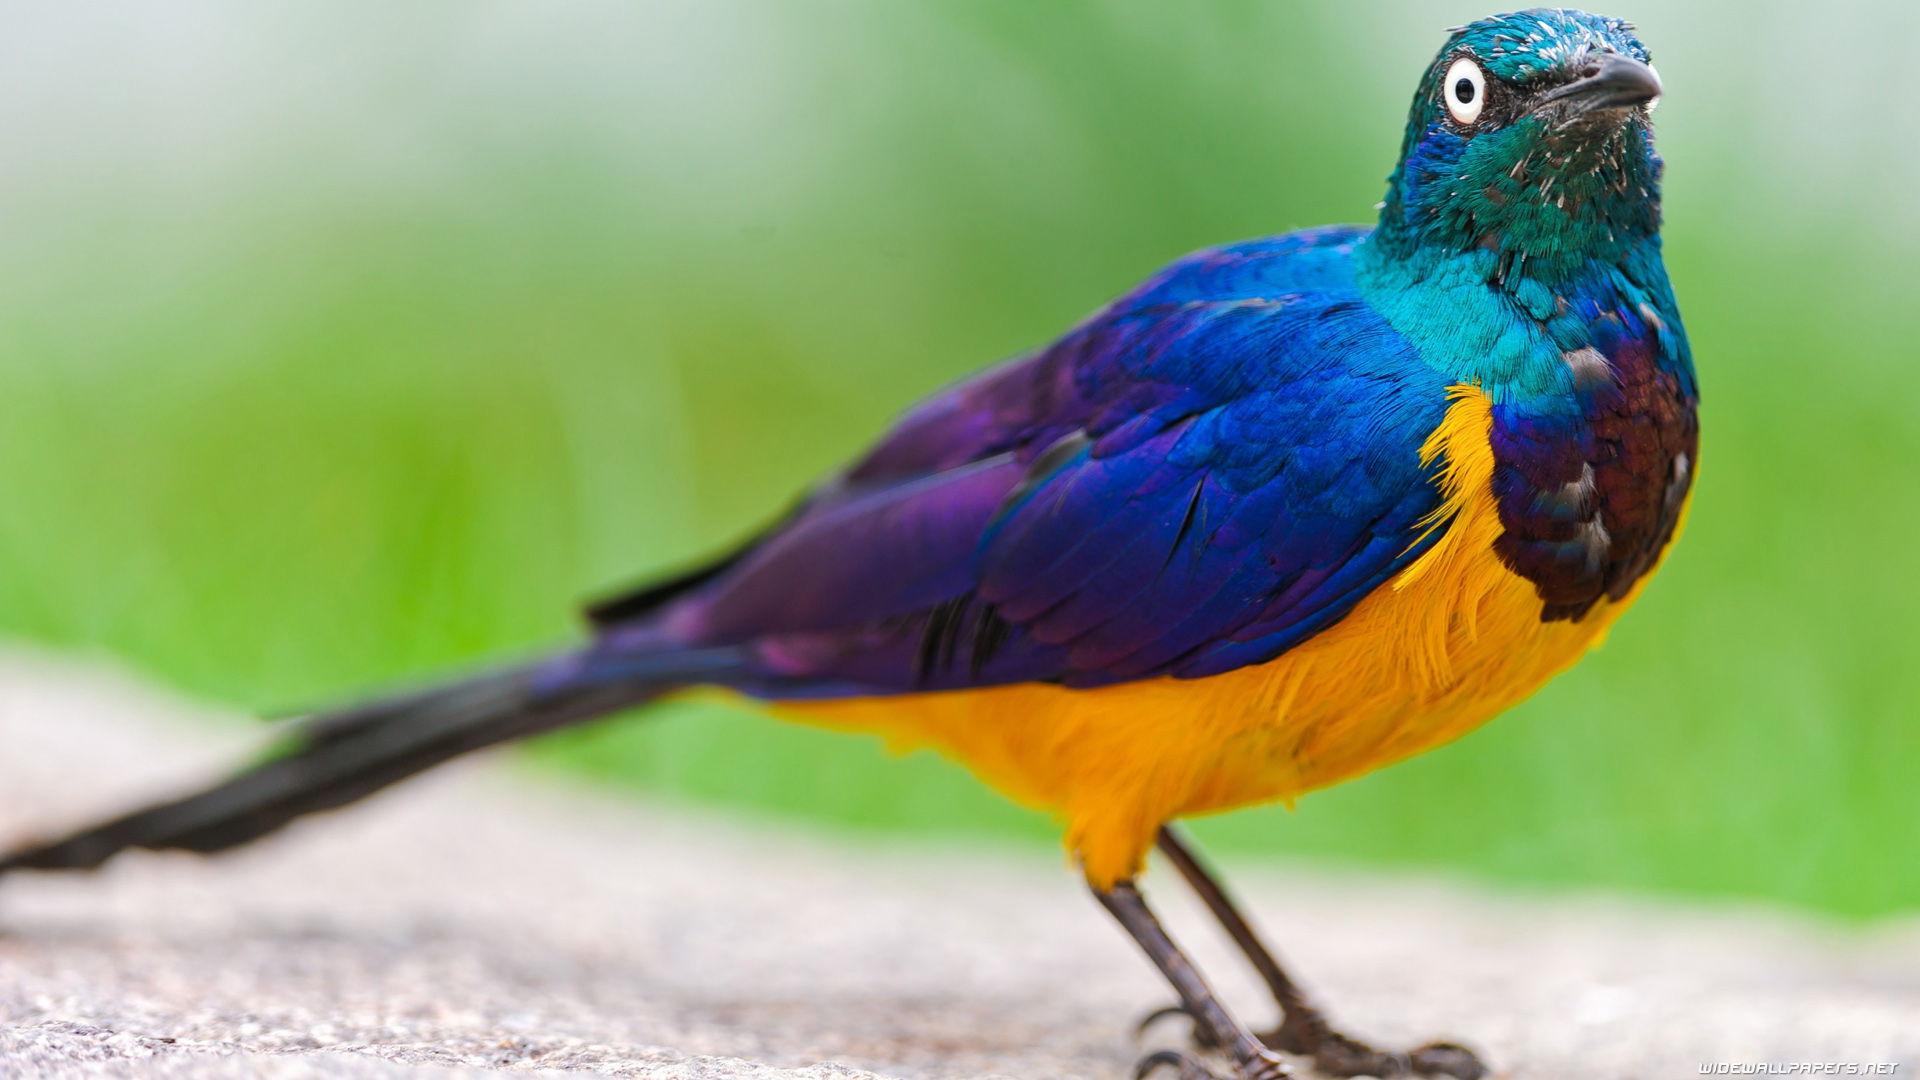 Blue and Yellow Bird with Strange Eyes